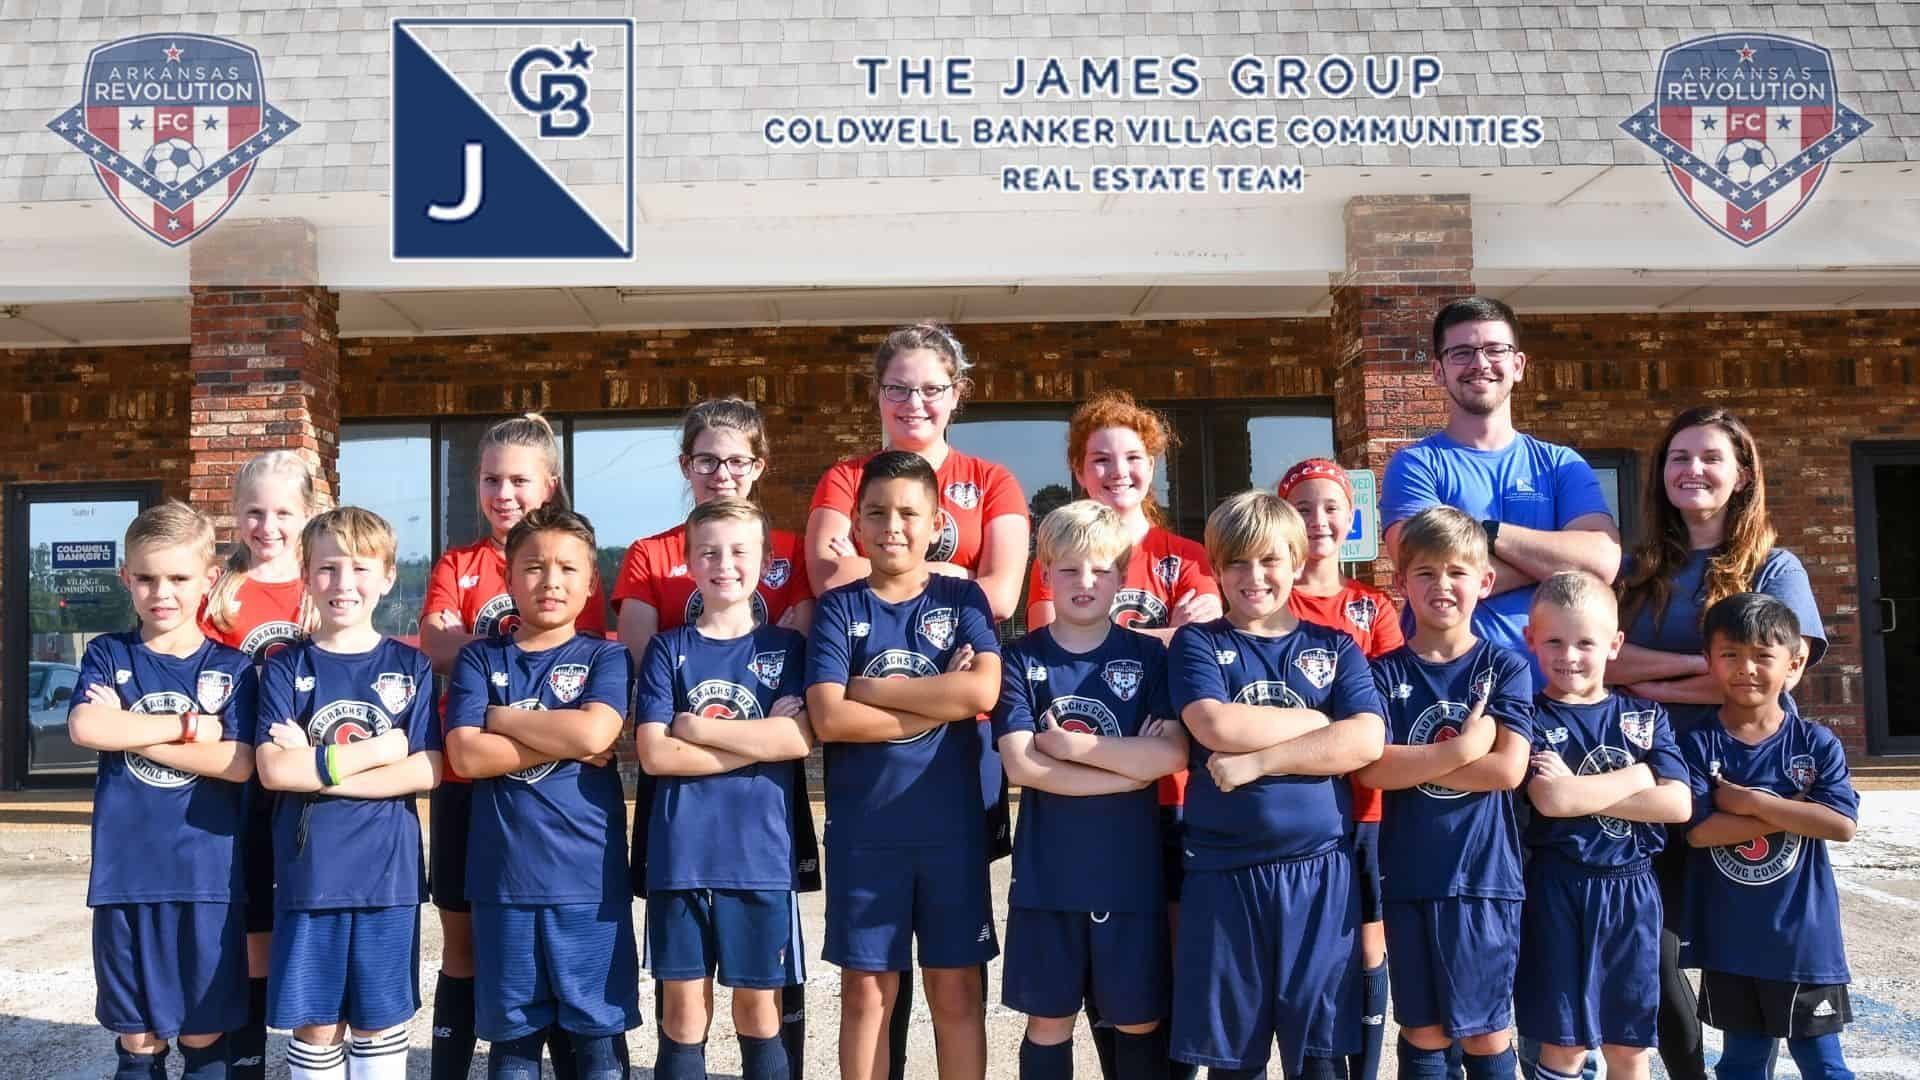 The James Group